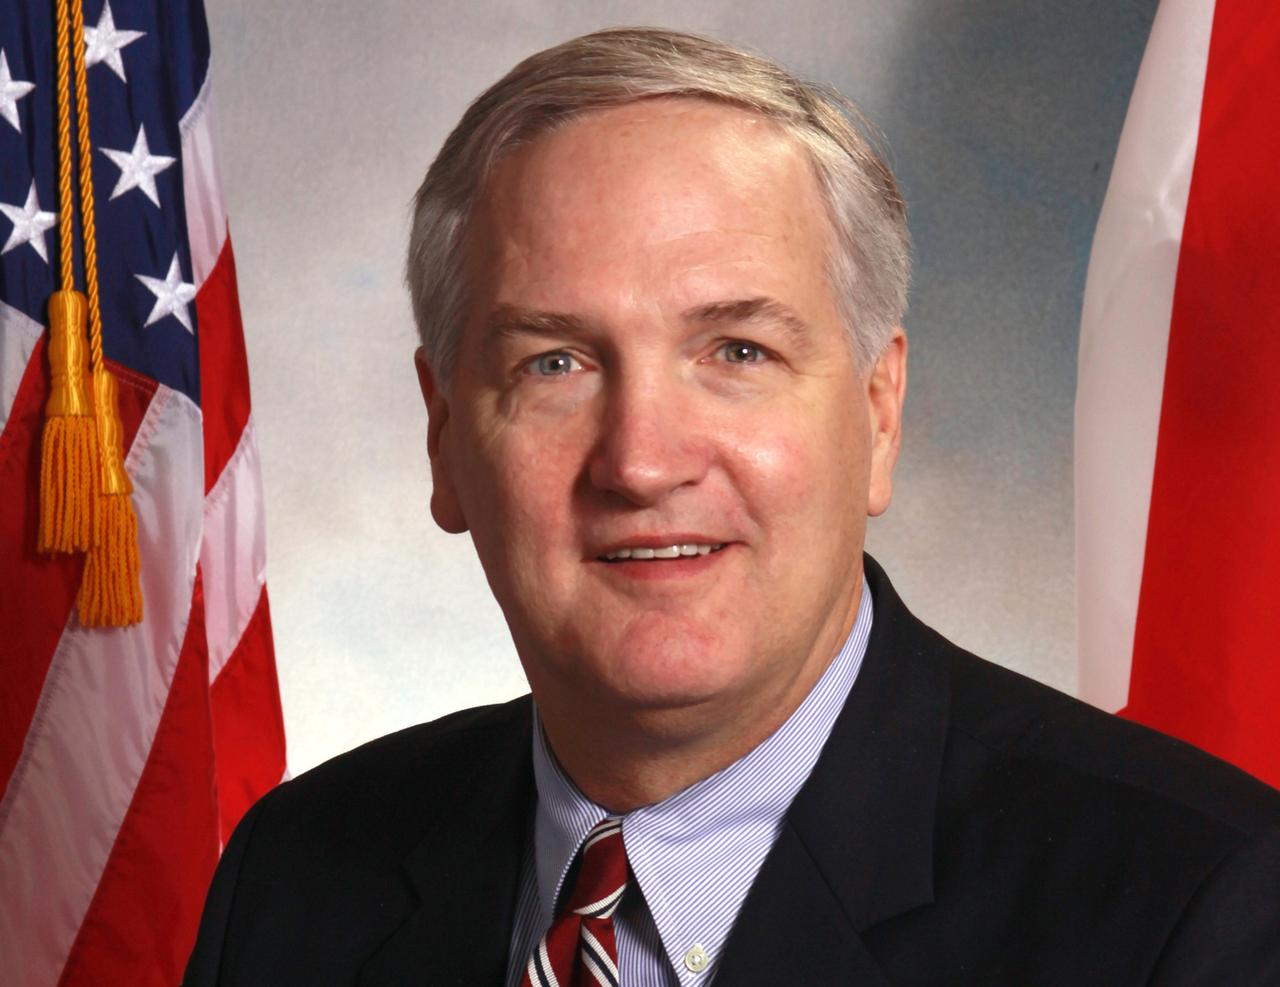 Alabama Attorney General Named To Jeff Sessions Senate Seat